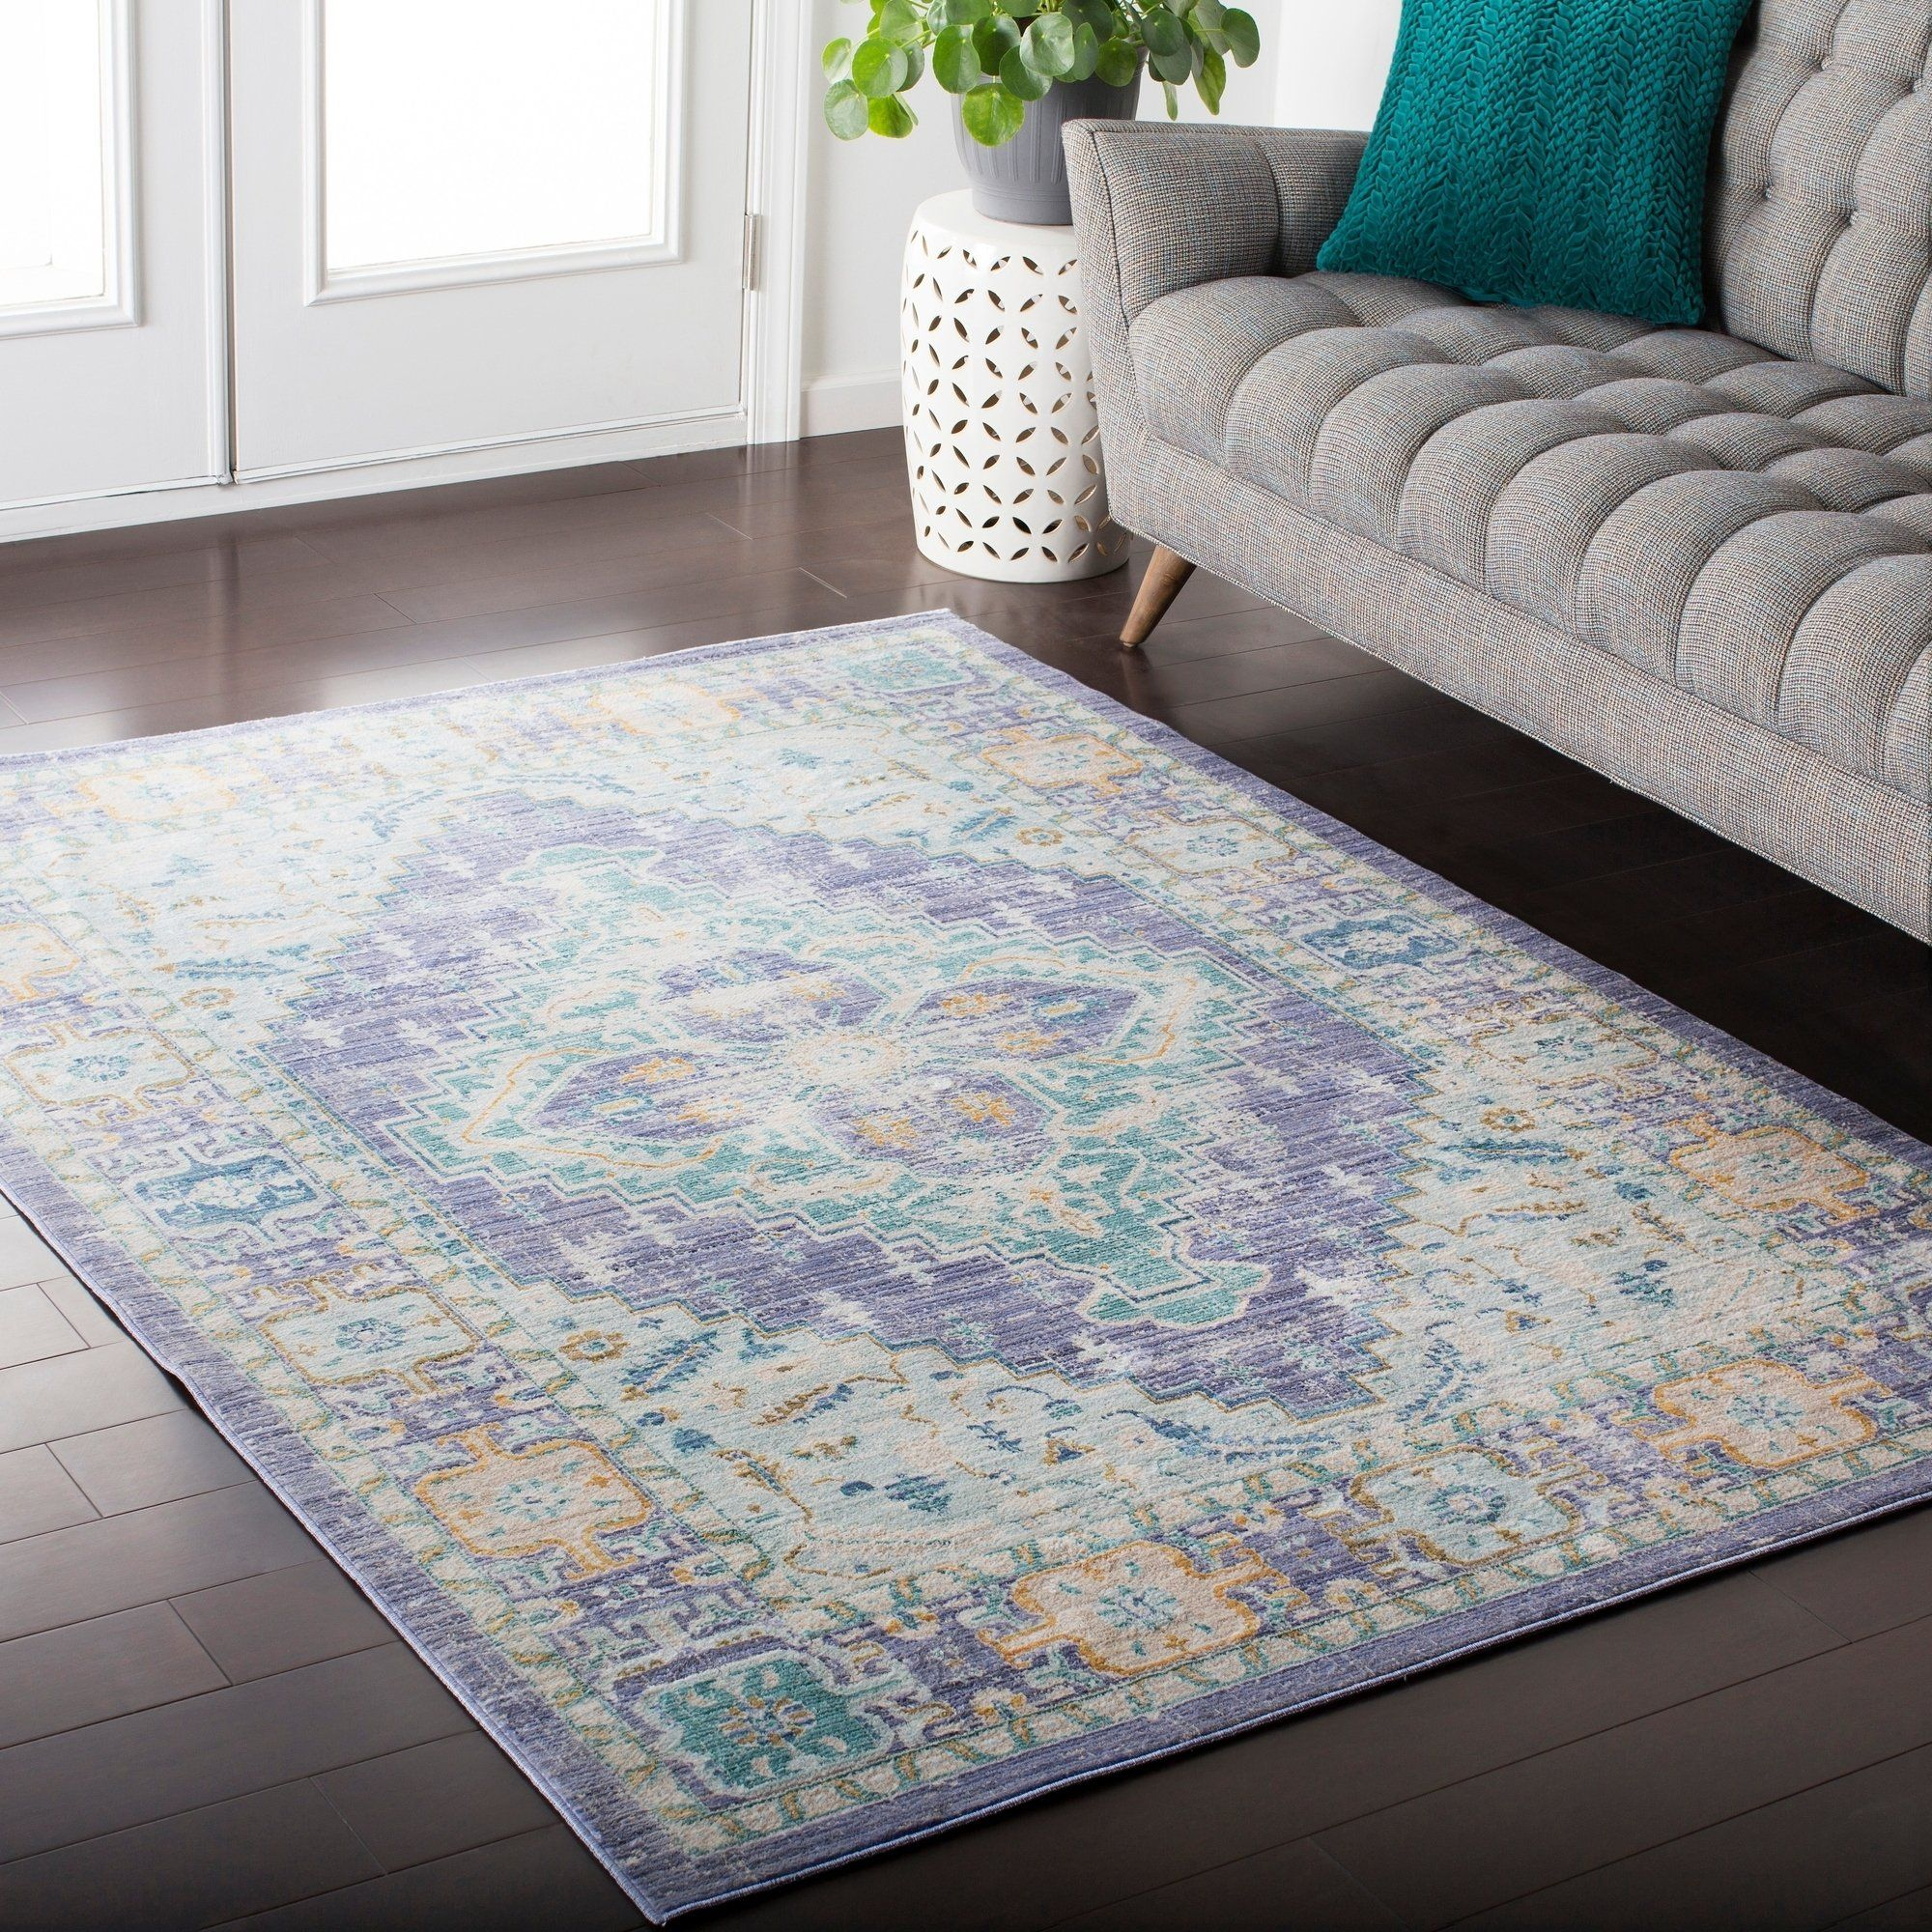 Hali House Distressed Persian Vintage Purple Blue Area Rug 9 X